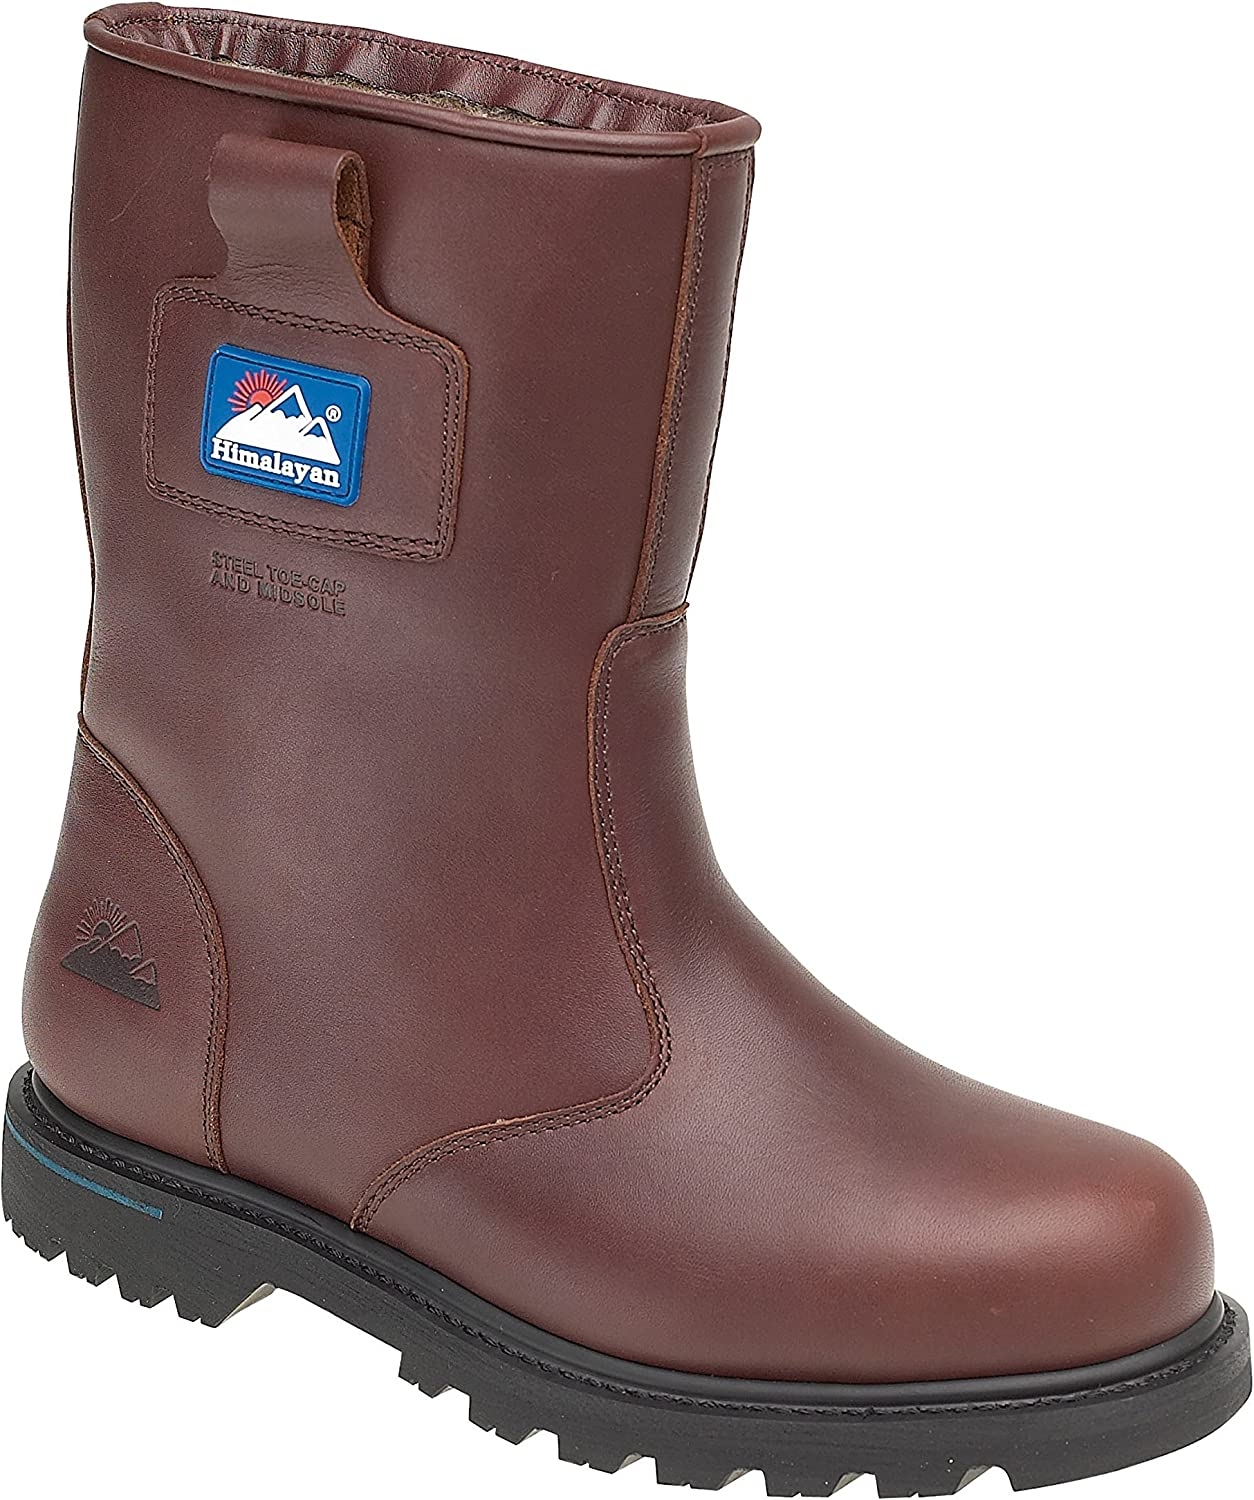 Himalayan Full Grain Leather Goodyear Welted Rigger Boots